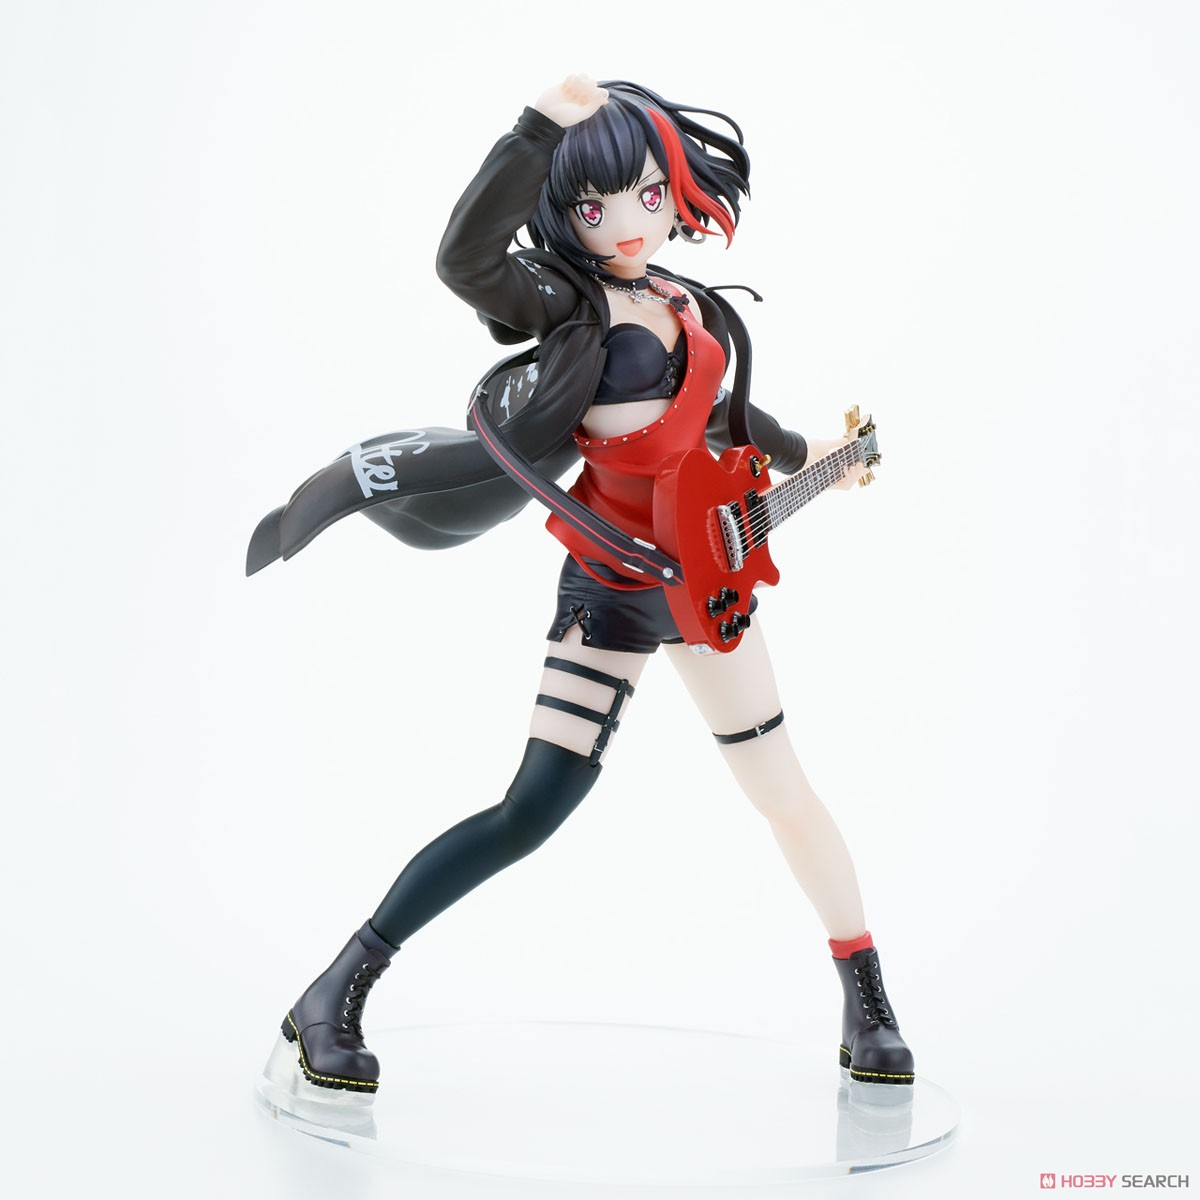 VOCAL COLLECTION『美竹蘭 from Afterglow』バンドリ! 1/7 完成品フィギュア-001